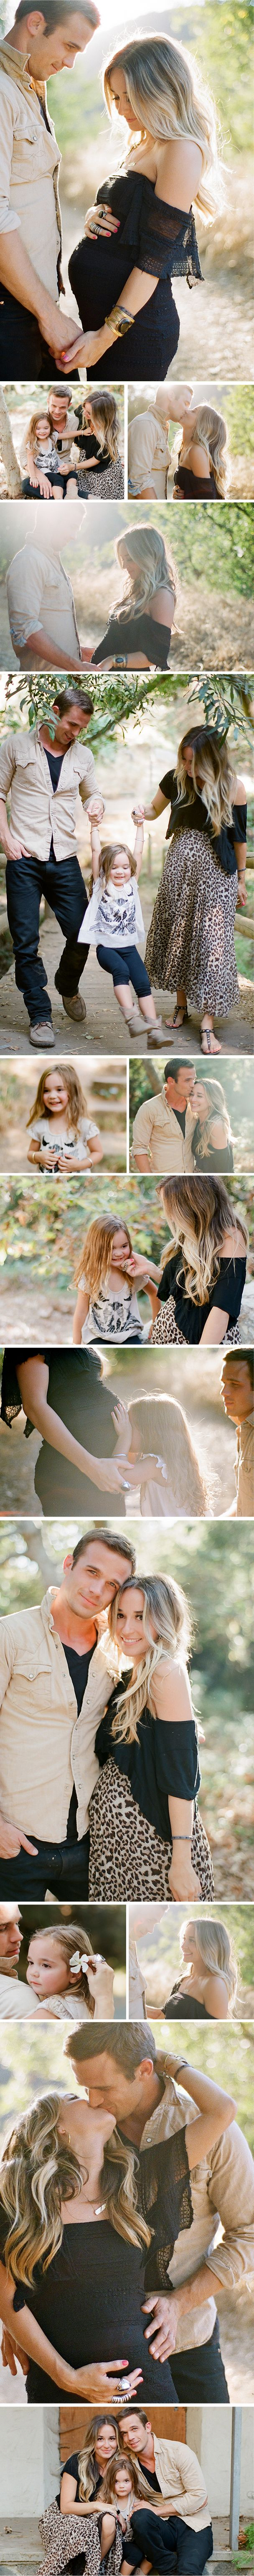 Family Photo Session Ideas | Props | Prop | Child Photography | Clothing Inspiration| Fashion | Pose Idea | Poses | Portrait | Portraits | Maternity